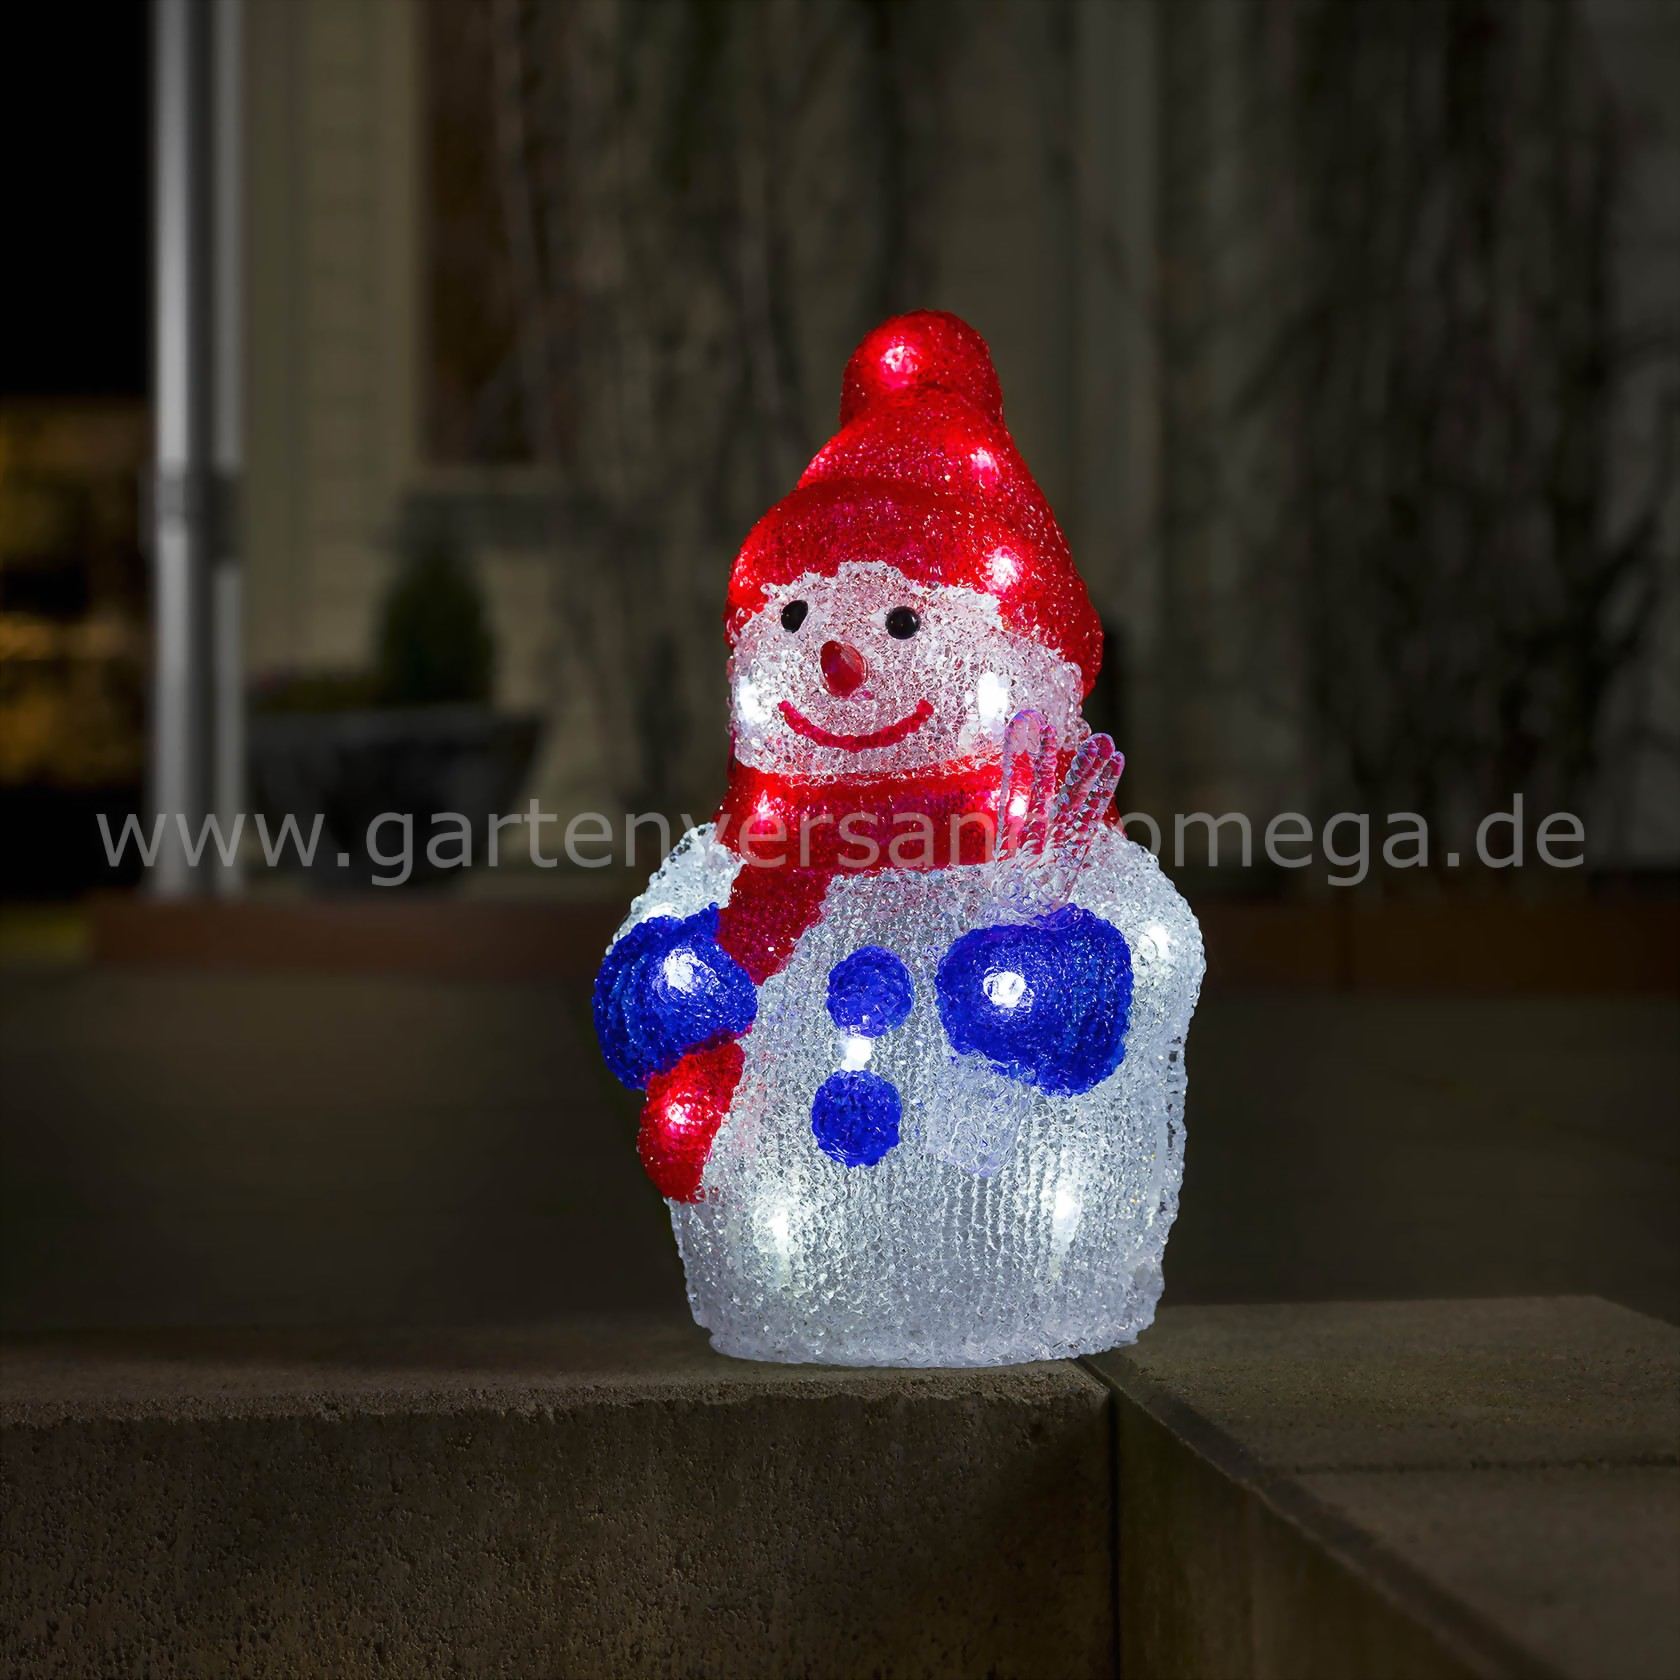 batteriebetriebene led acrylfigur schneemann weihnachtsau enbeleuchtung mit batterie led. Black Bedroom Furniture Sets. Home Design Ideas